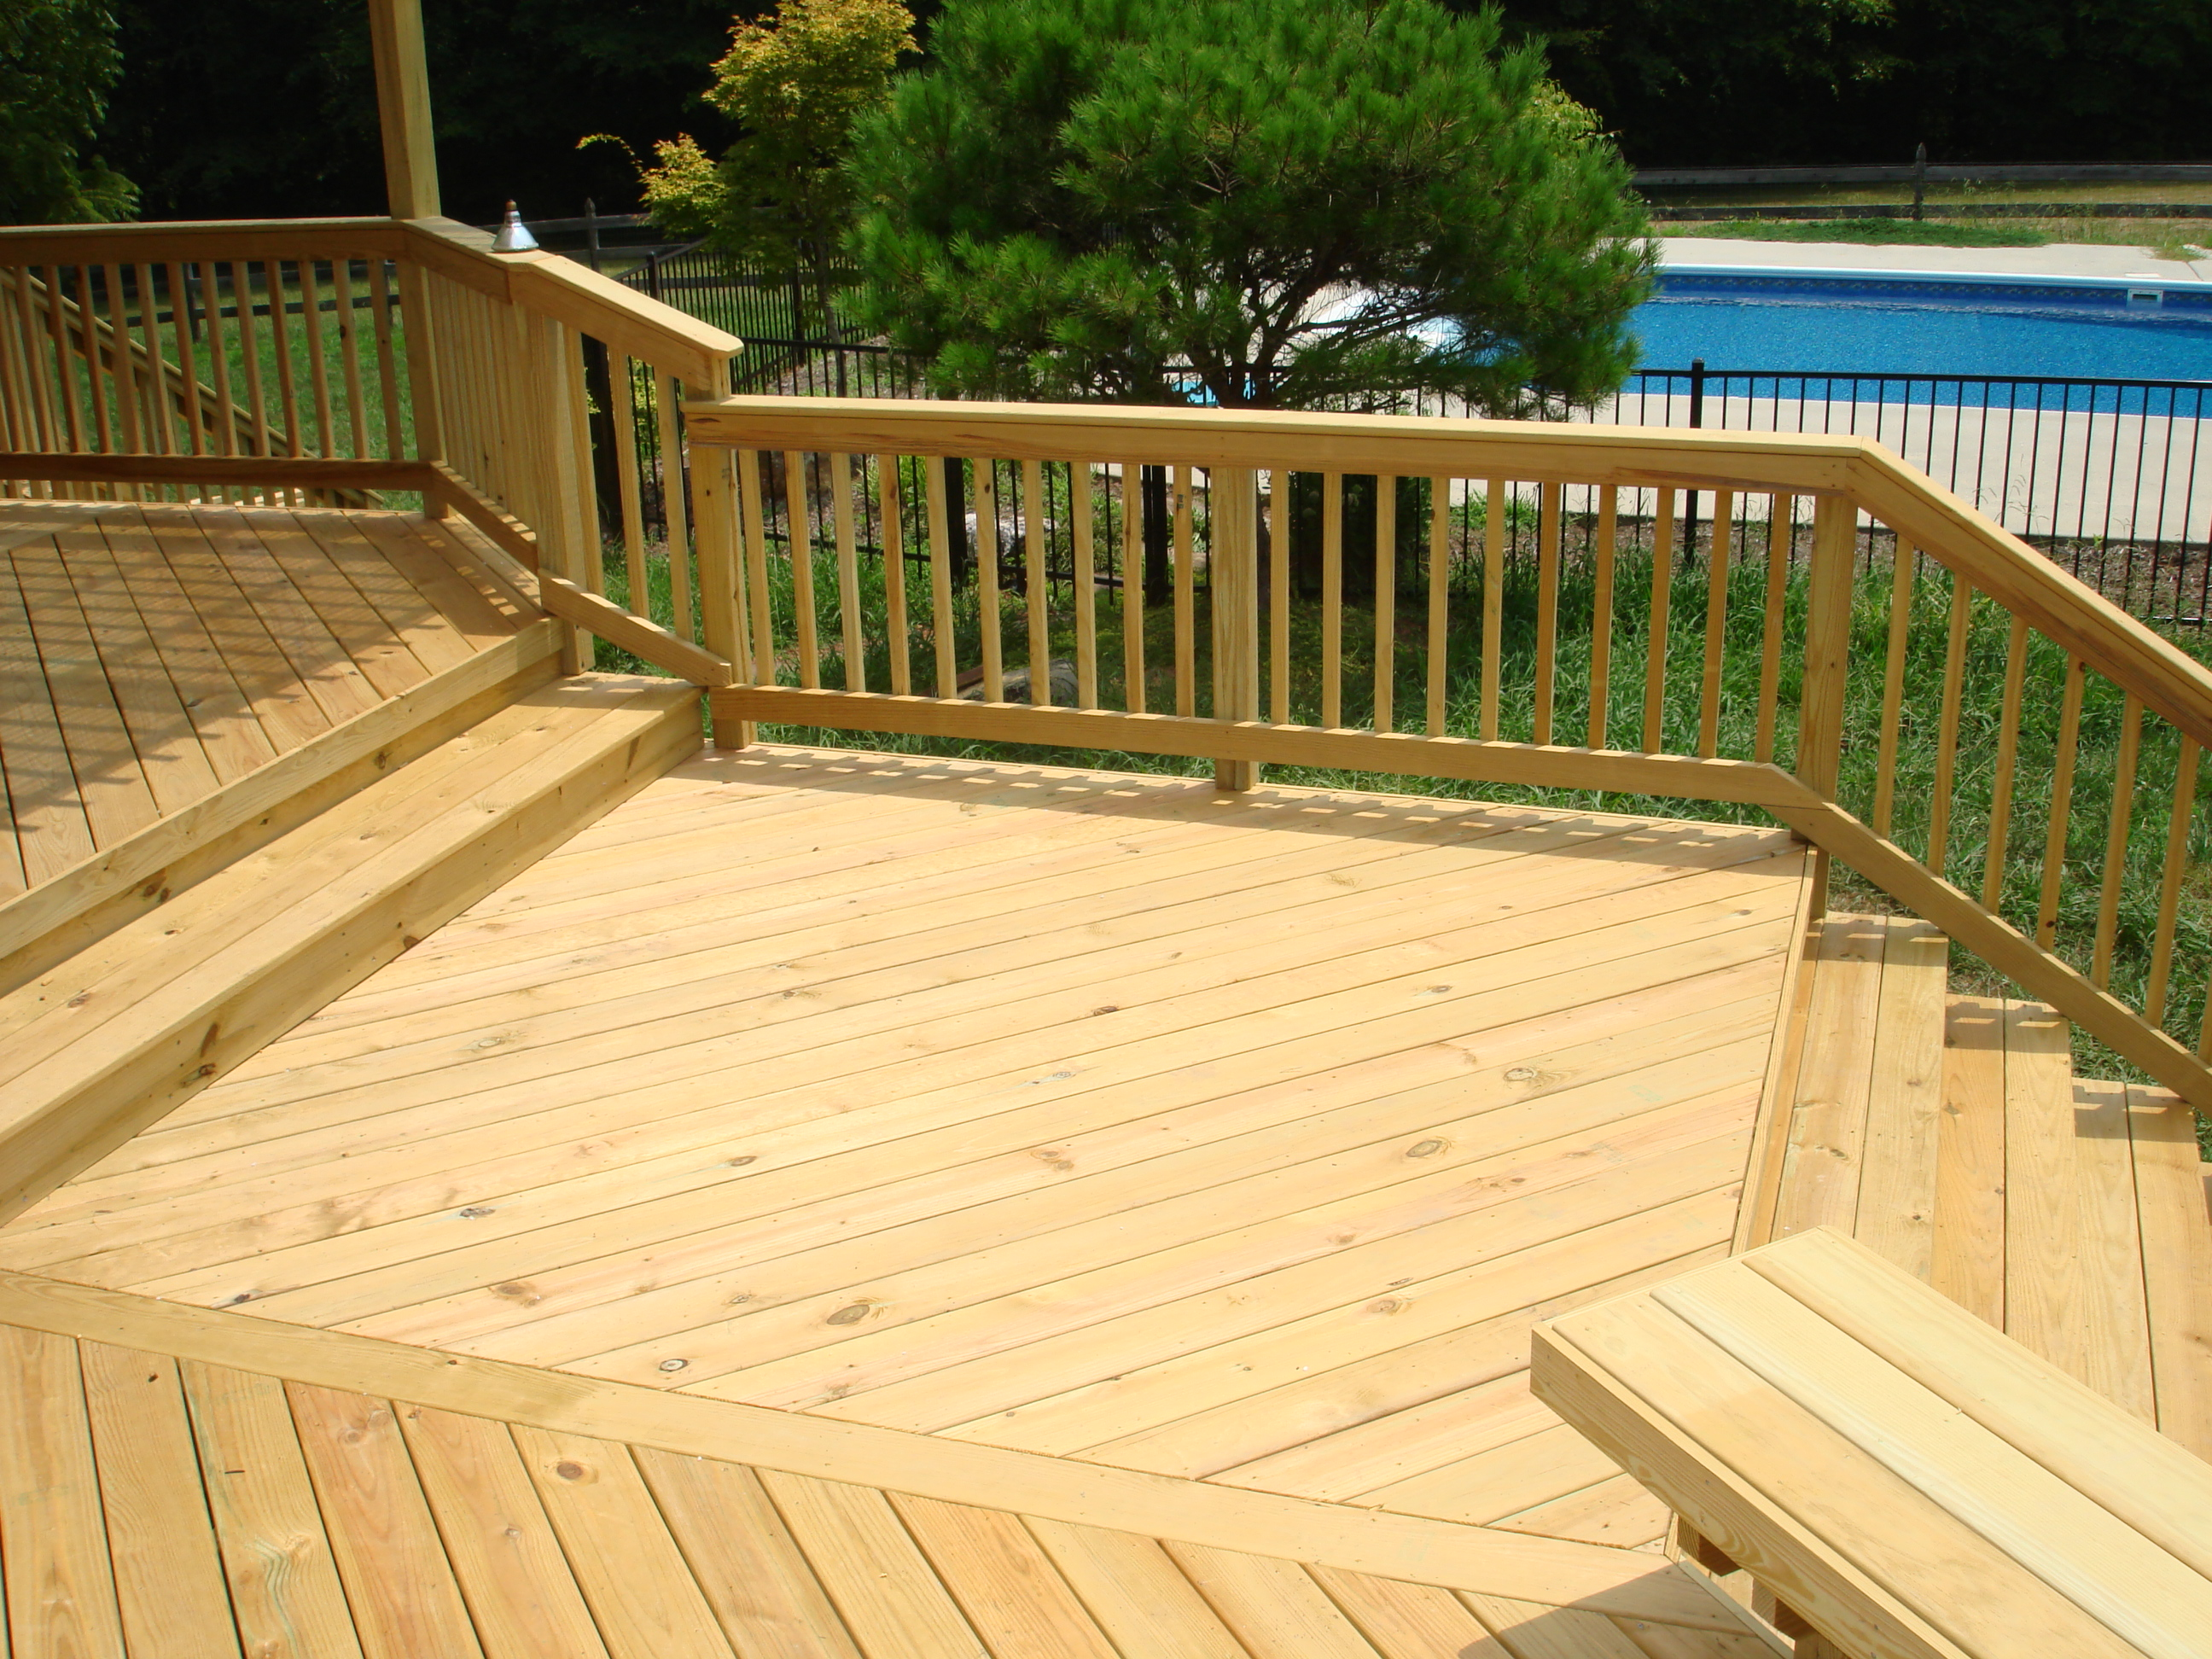 St. Louis Mo: Deck Design and Building Details by ... on Wood Deck Ideas For Backyard id=17067